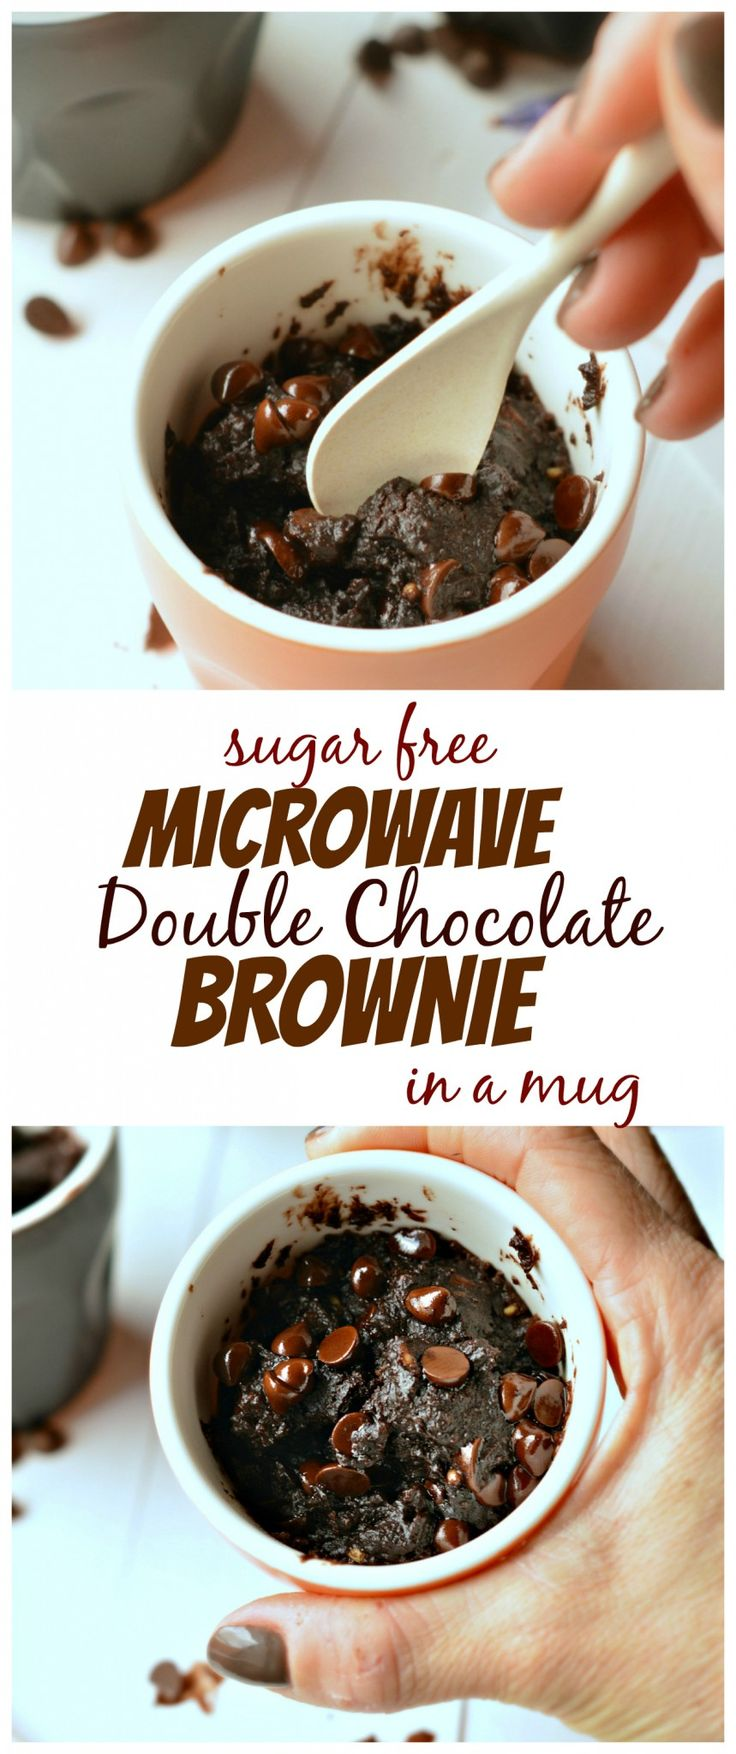 Best 25+ Sugar free chocolate ideas only on Pinterest | Sugar free ...